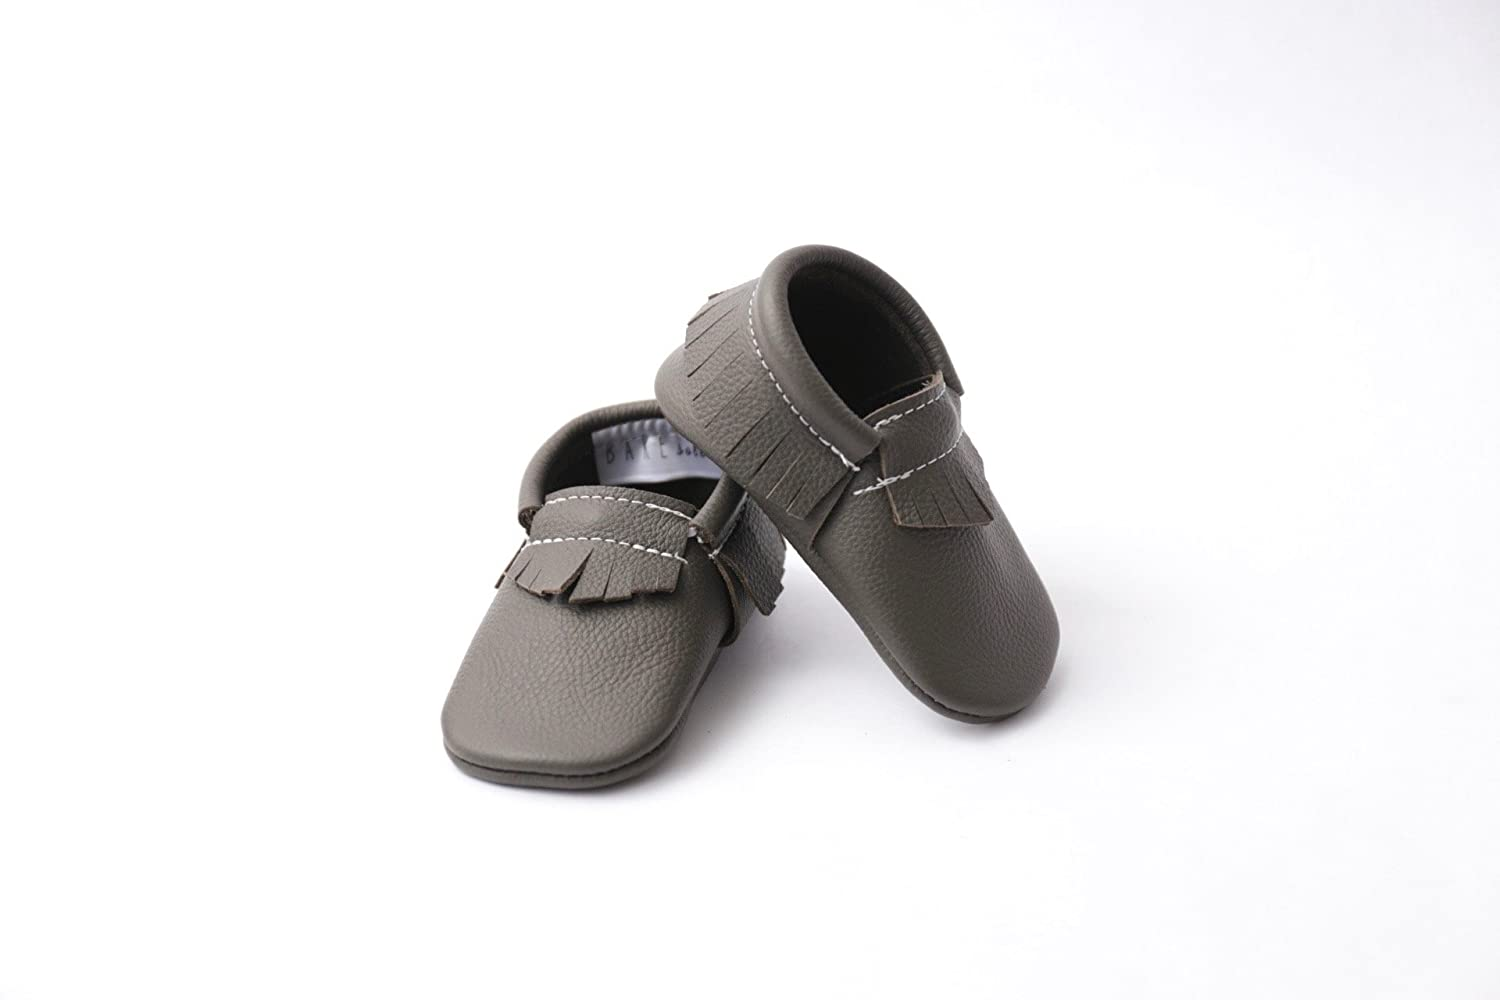 Stone Grey Handmade Leather Moccasin